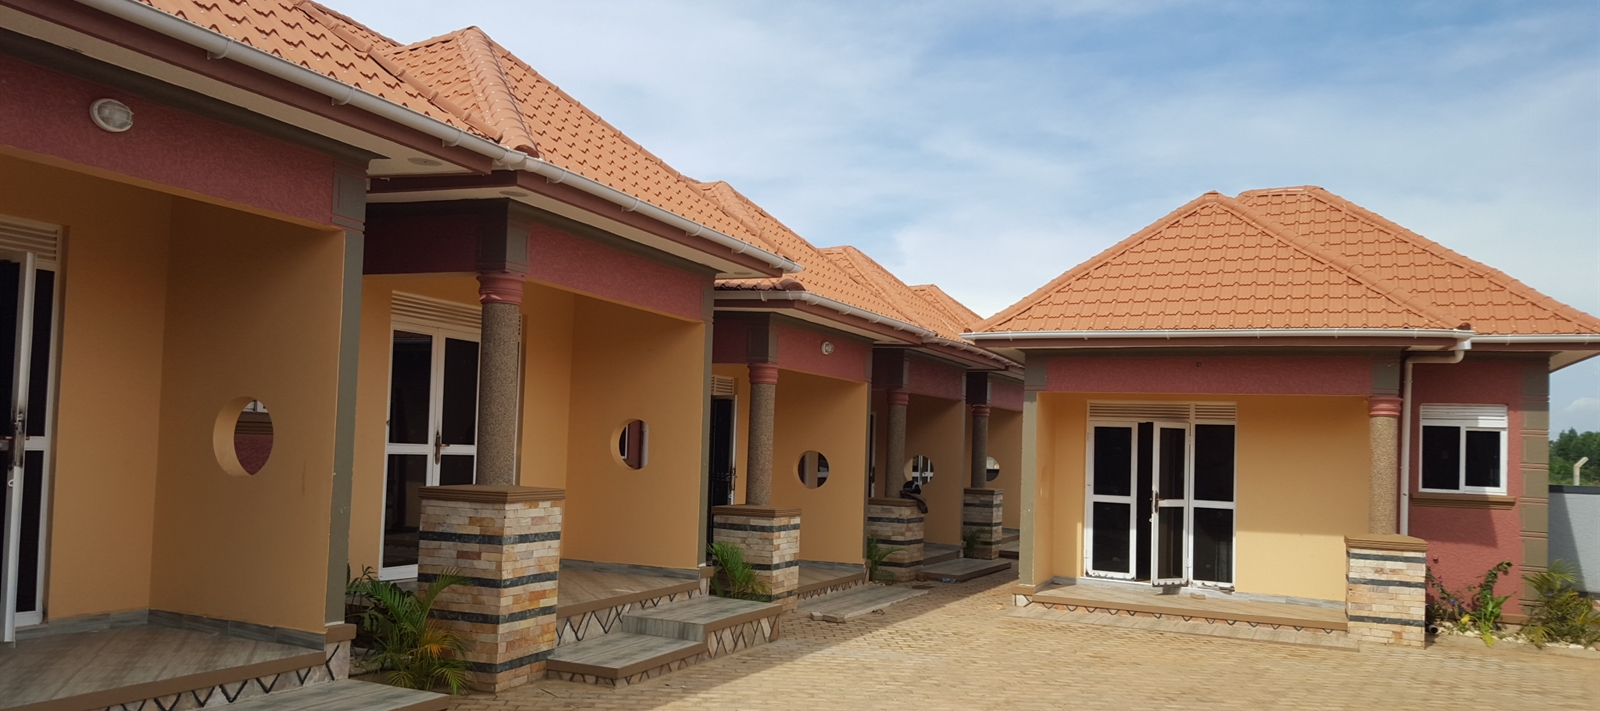 Semi-detached units for rent in Kungu.